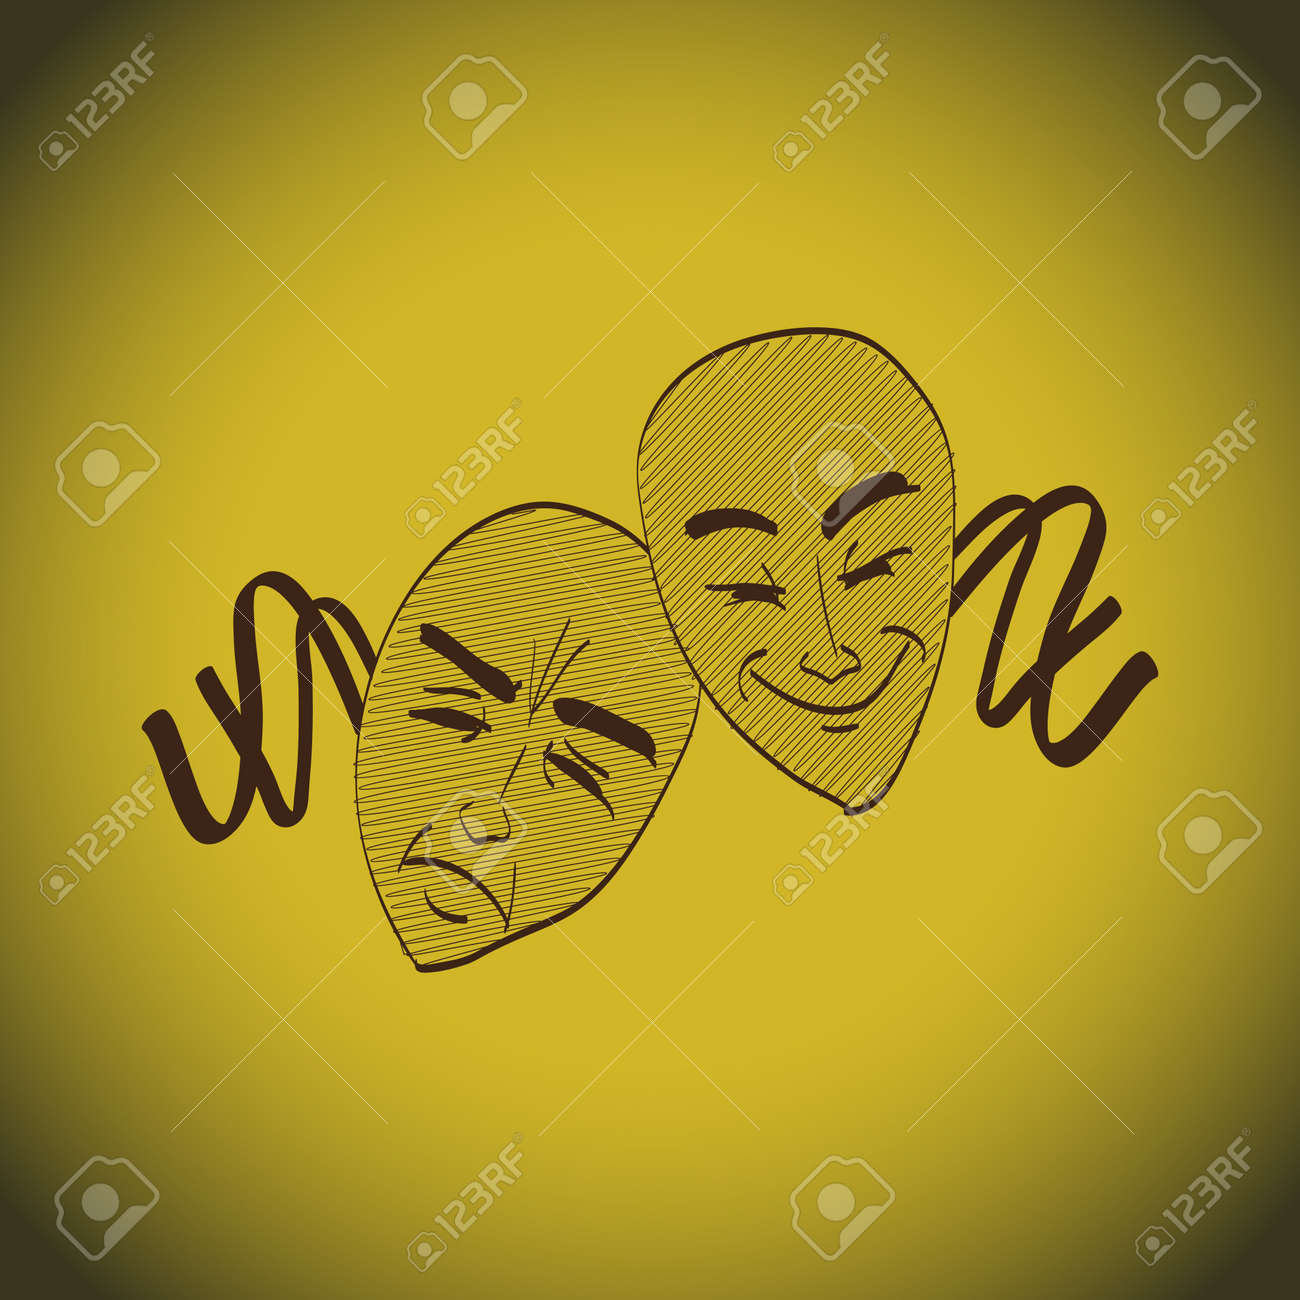 Theatre masks lucky and sad - illustration Stock Vector - 18403077